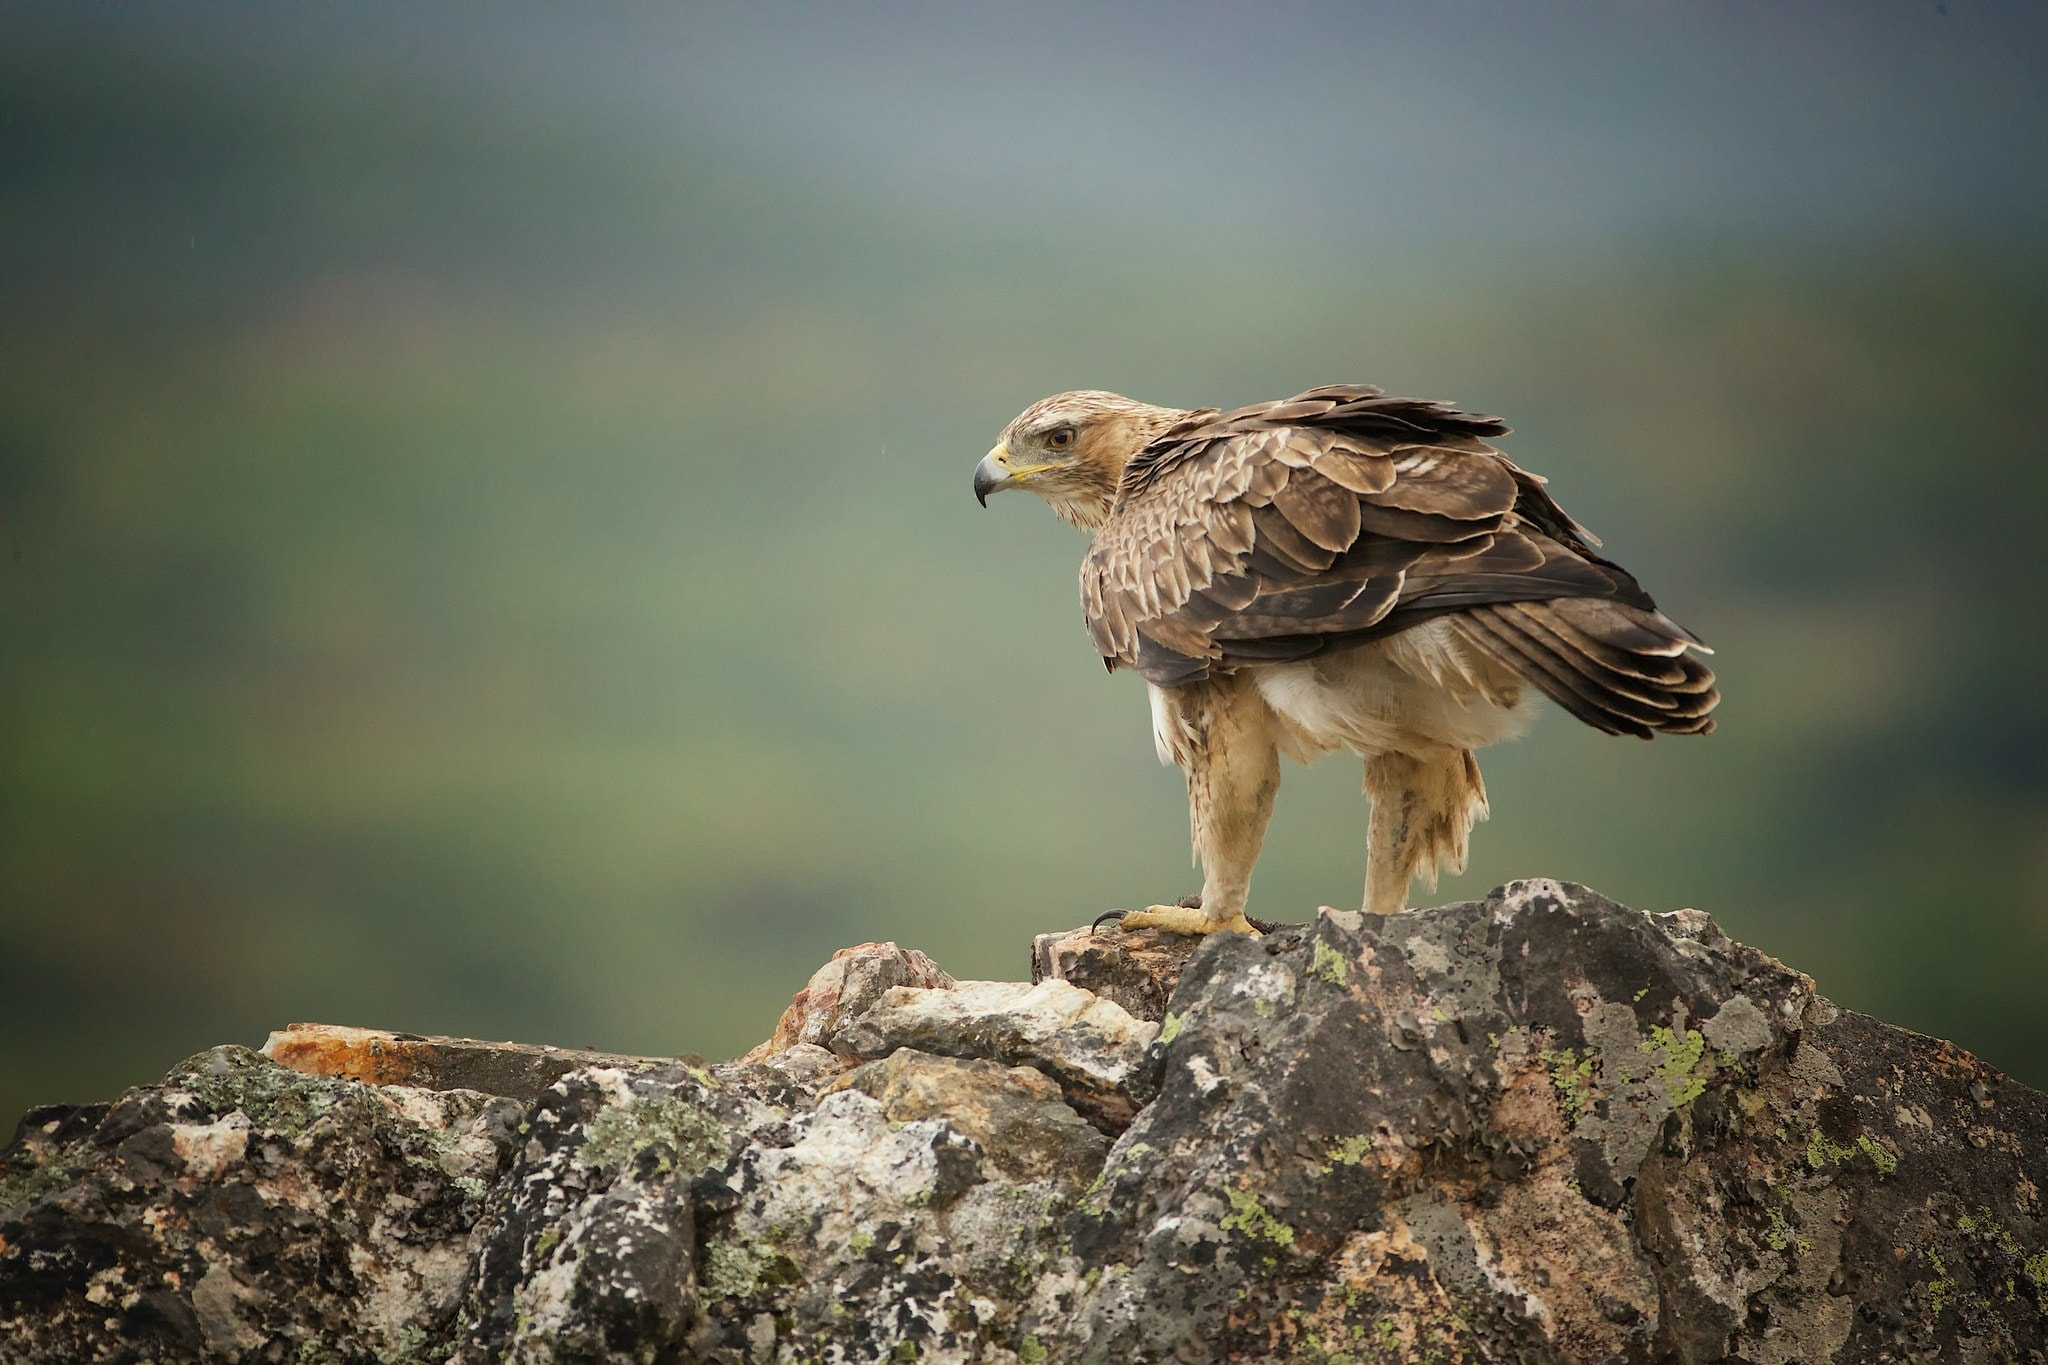 One Of The Impressive Bonelli's Eagles Perched On A Tree Overlooking The Estate Below   Photographed On The Estate Used For The NaturesLens Eagles Of Extremadura Photography Holiday.jpg